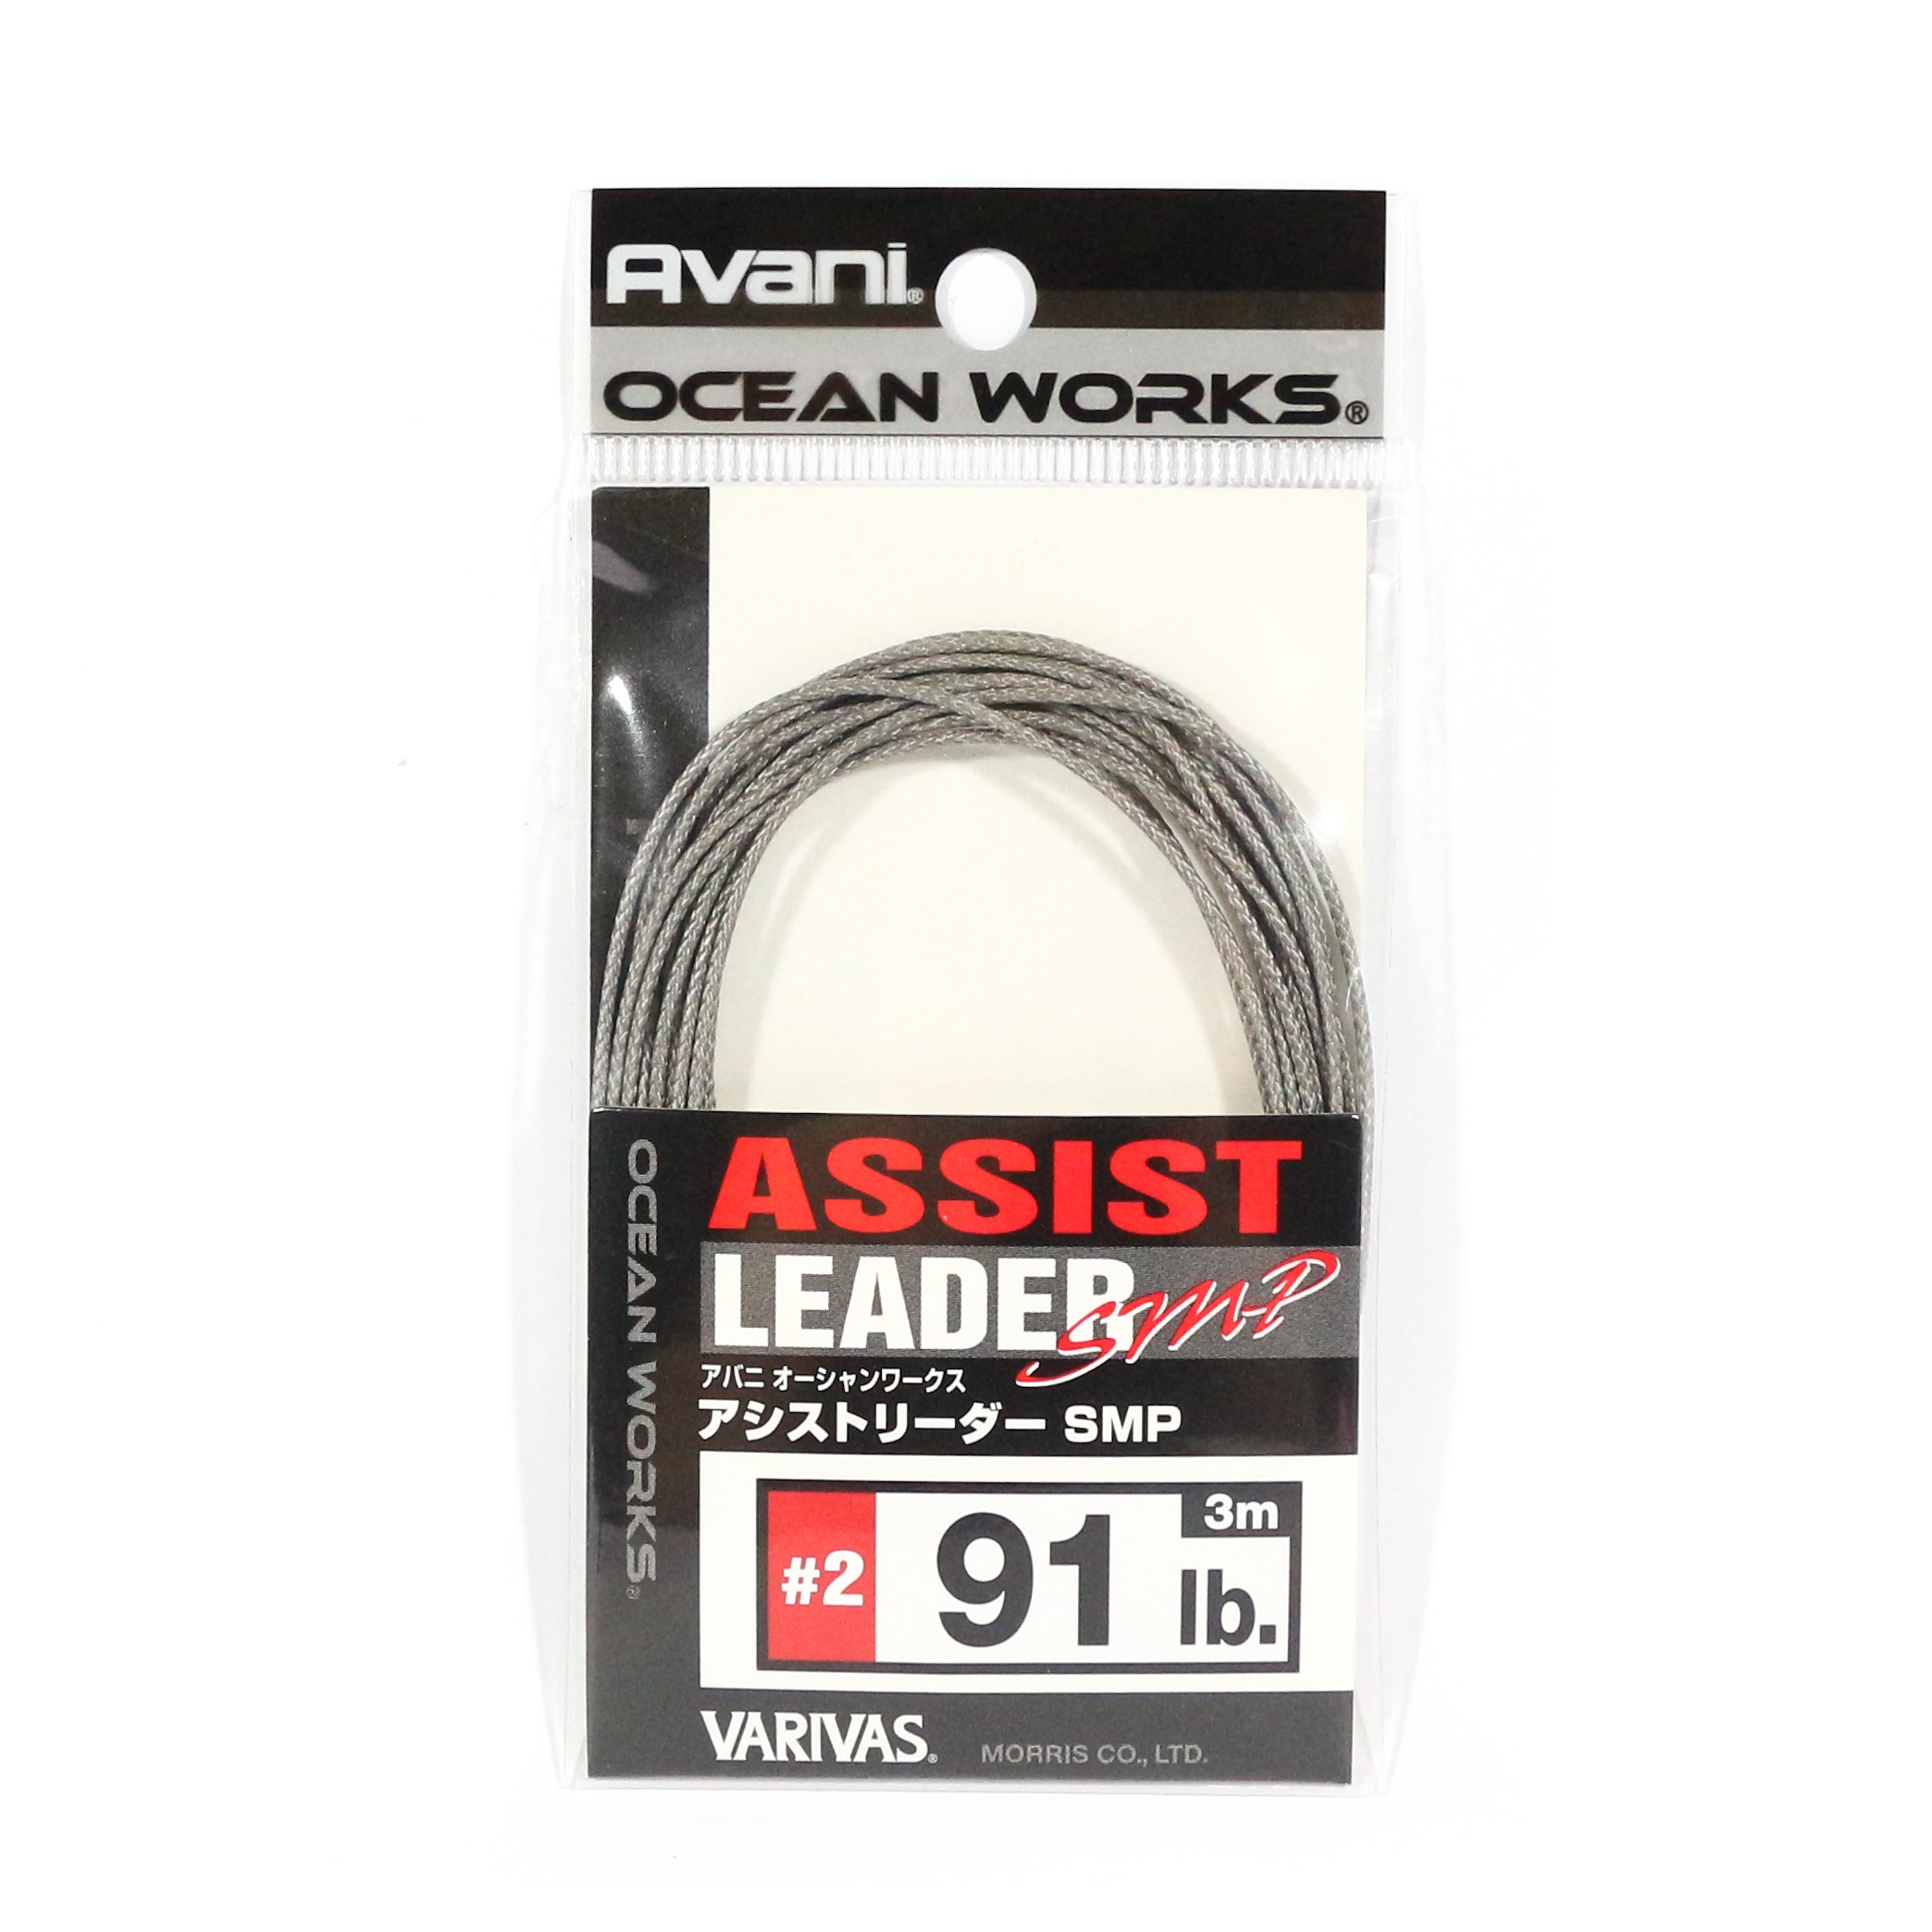 Varivas AH-2 Ocean Works Assist Leader SMP 3 meters #2 91lb (3950)